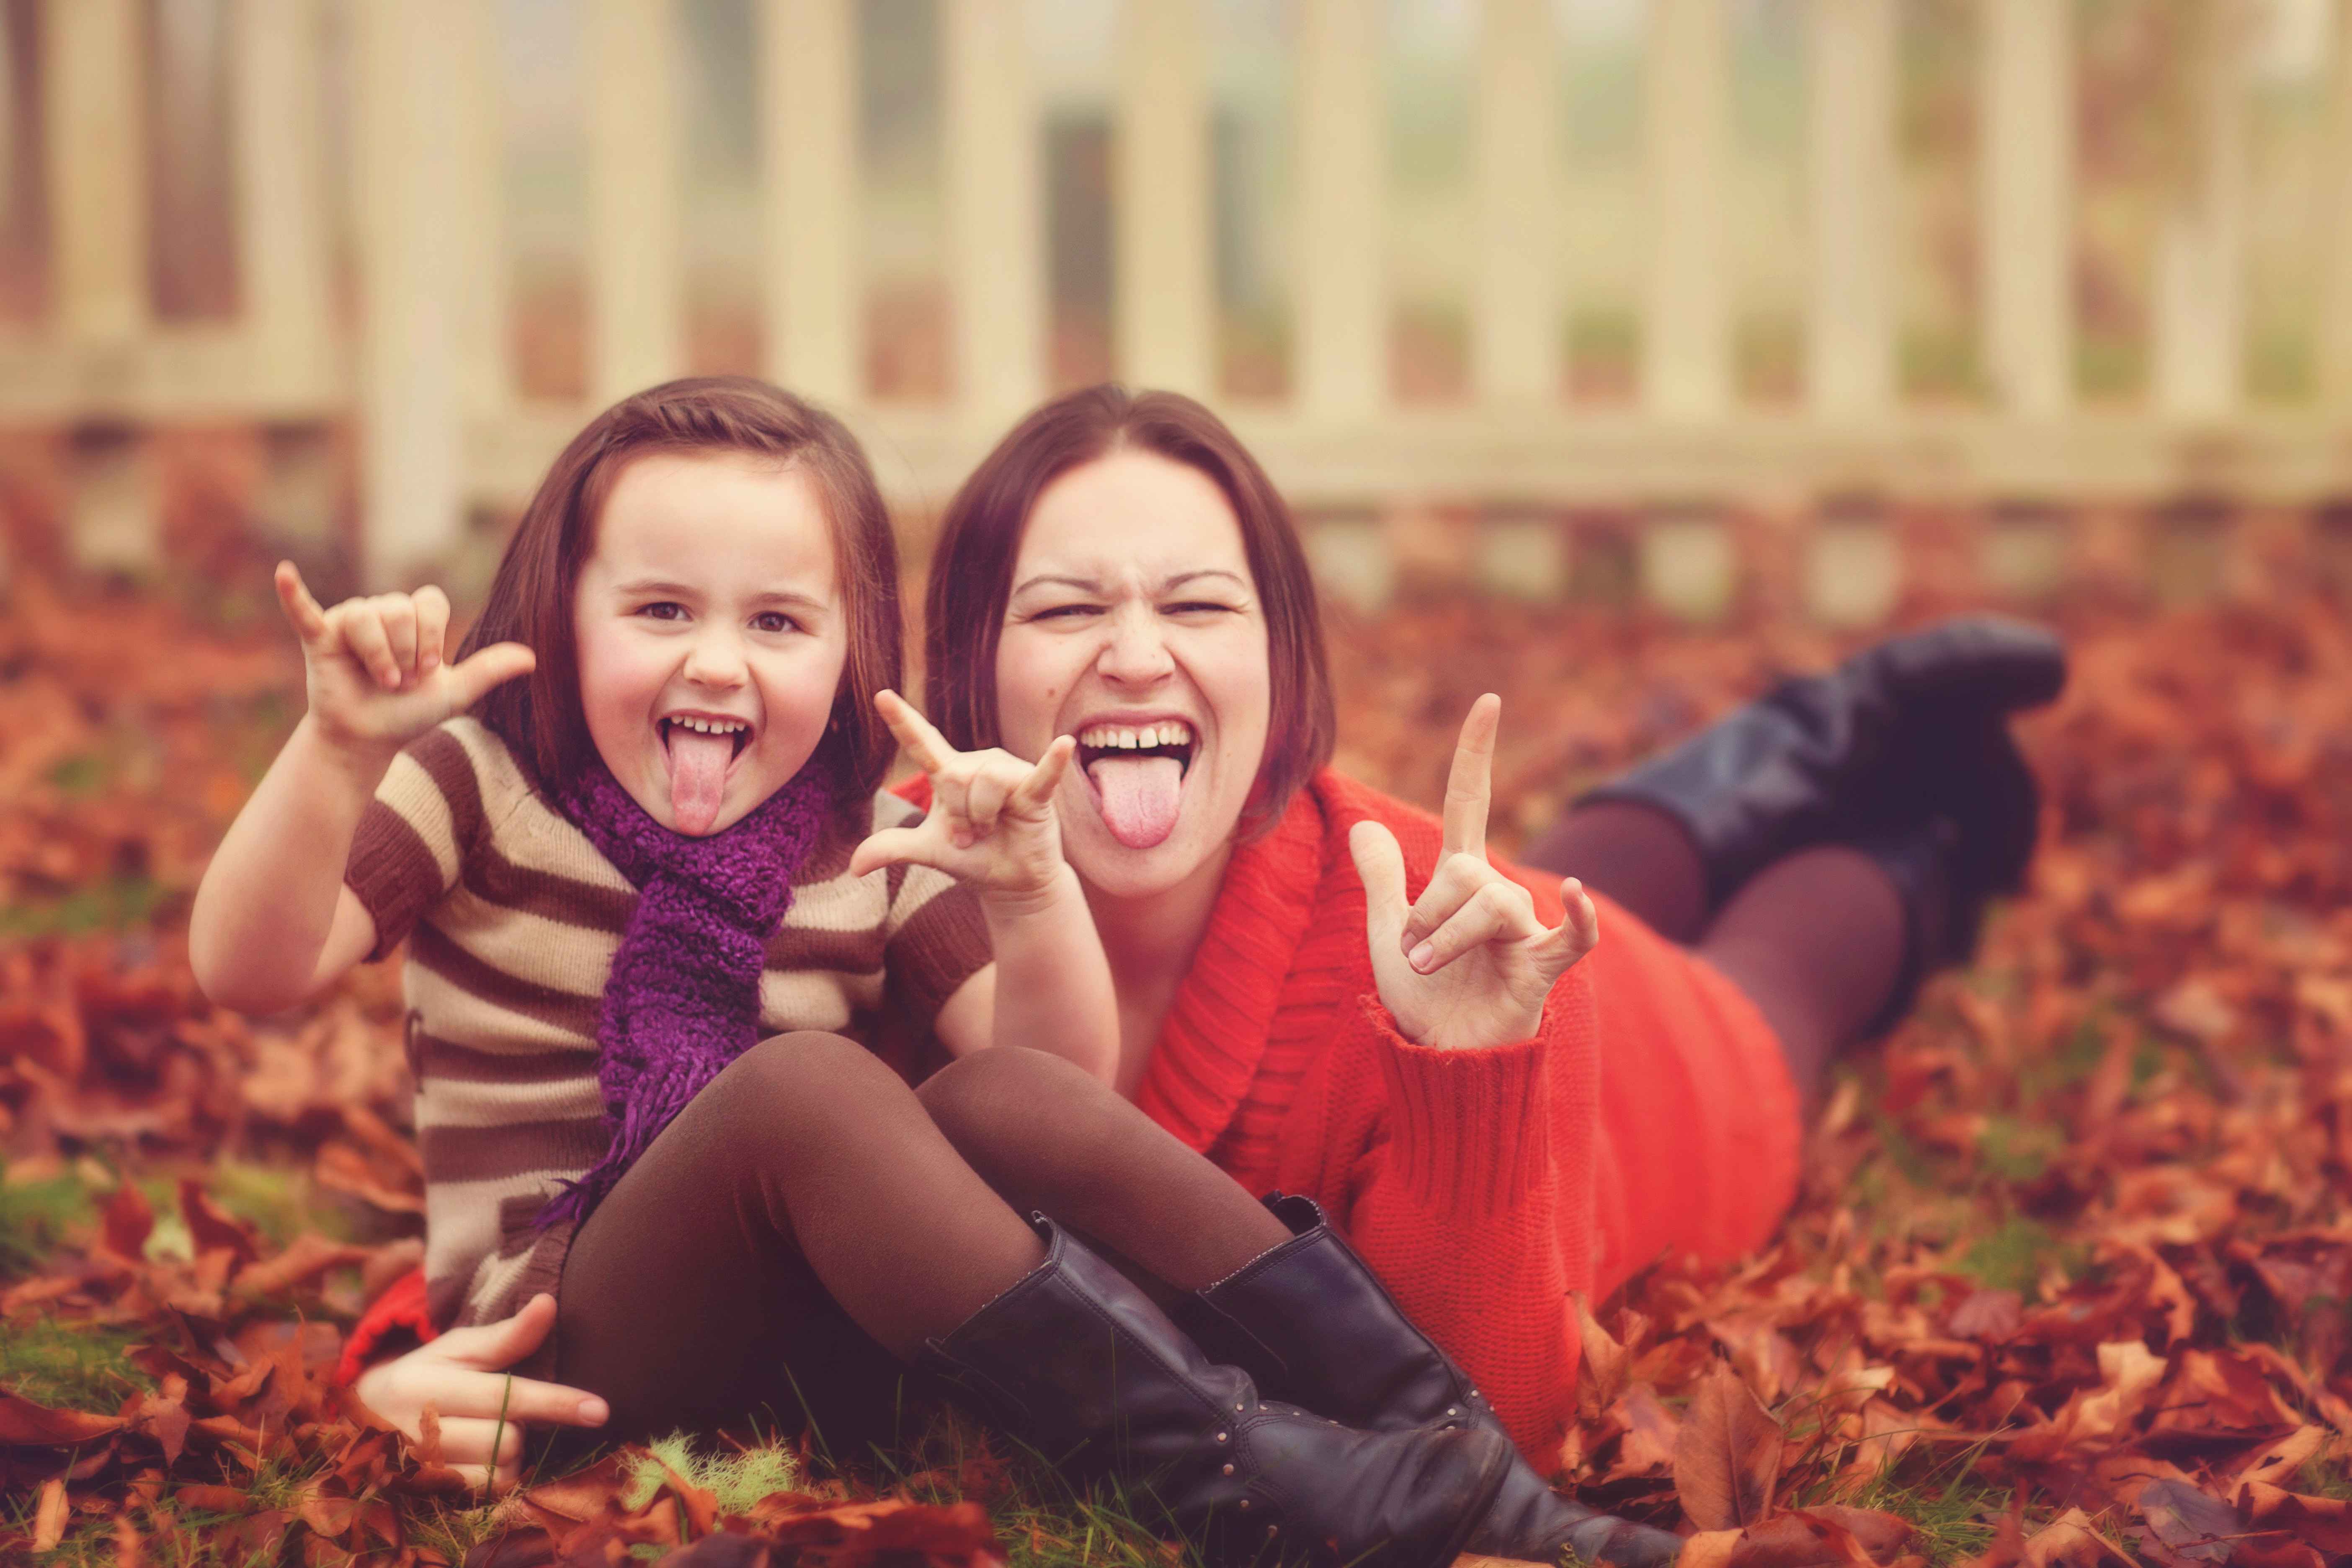 Take funny photos together